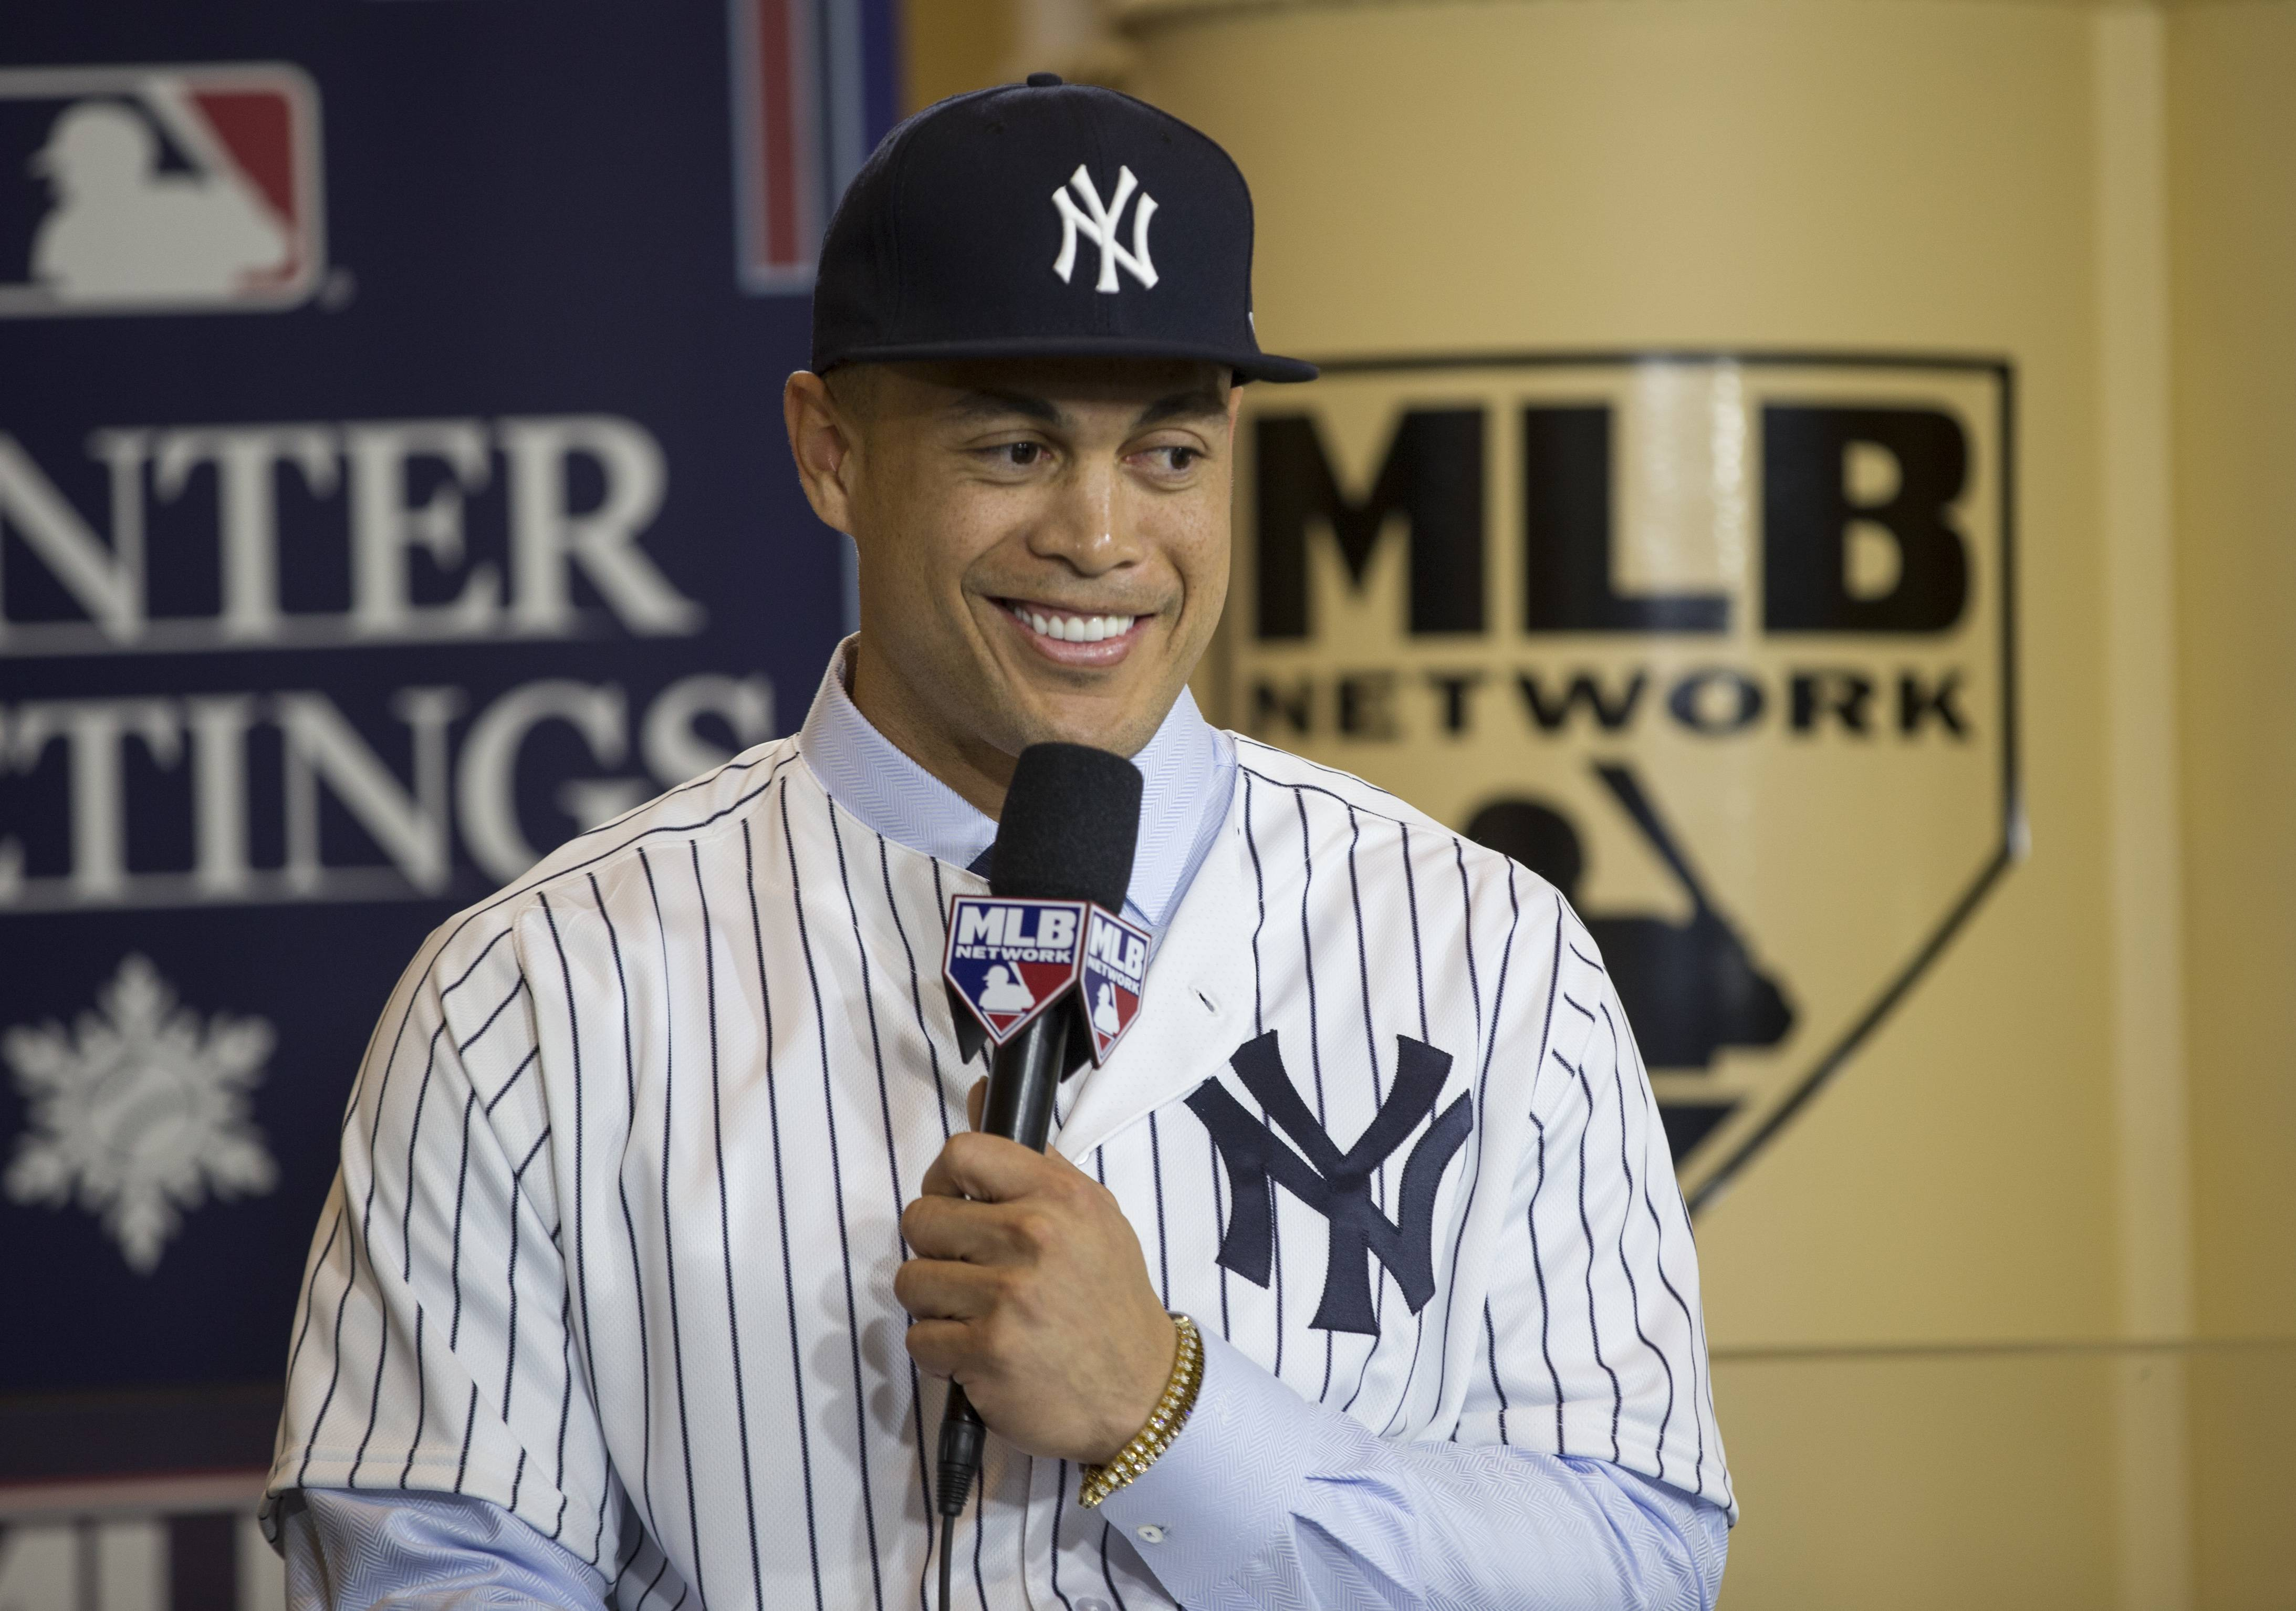 New Yankee Giancarlo Stanton answers questions during a press conference at the Major League Baseball winter meetings in Orlando, Fla., Monday, Dec. 11, 2017. (AP Photo/Willie J. Allen Jr.)